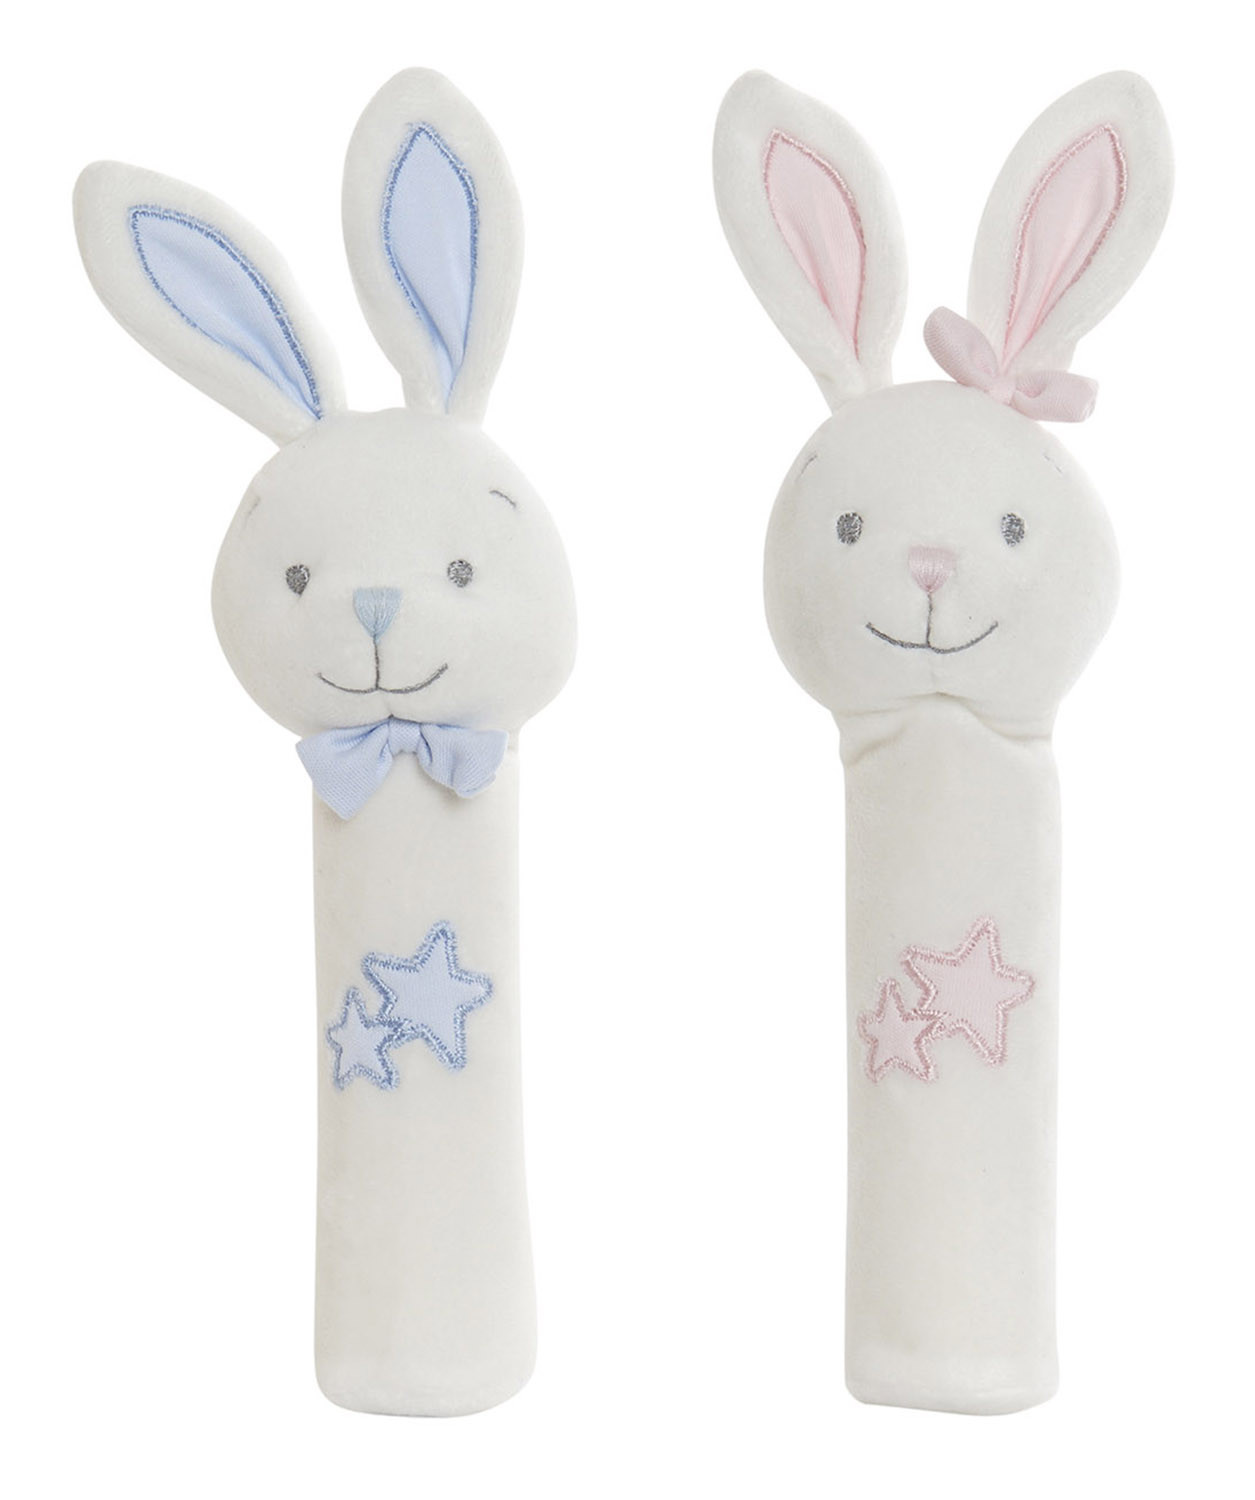 Plush Elongated Bunny with Stars, Ideal for Children and Babies, Animal Design, Plush Infant 8x7x25cm - Home and More